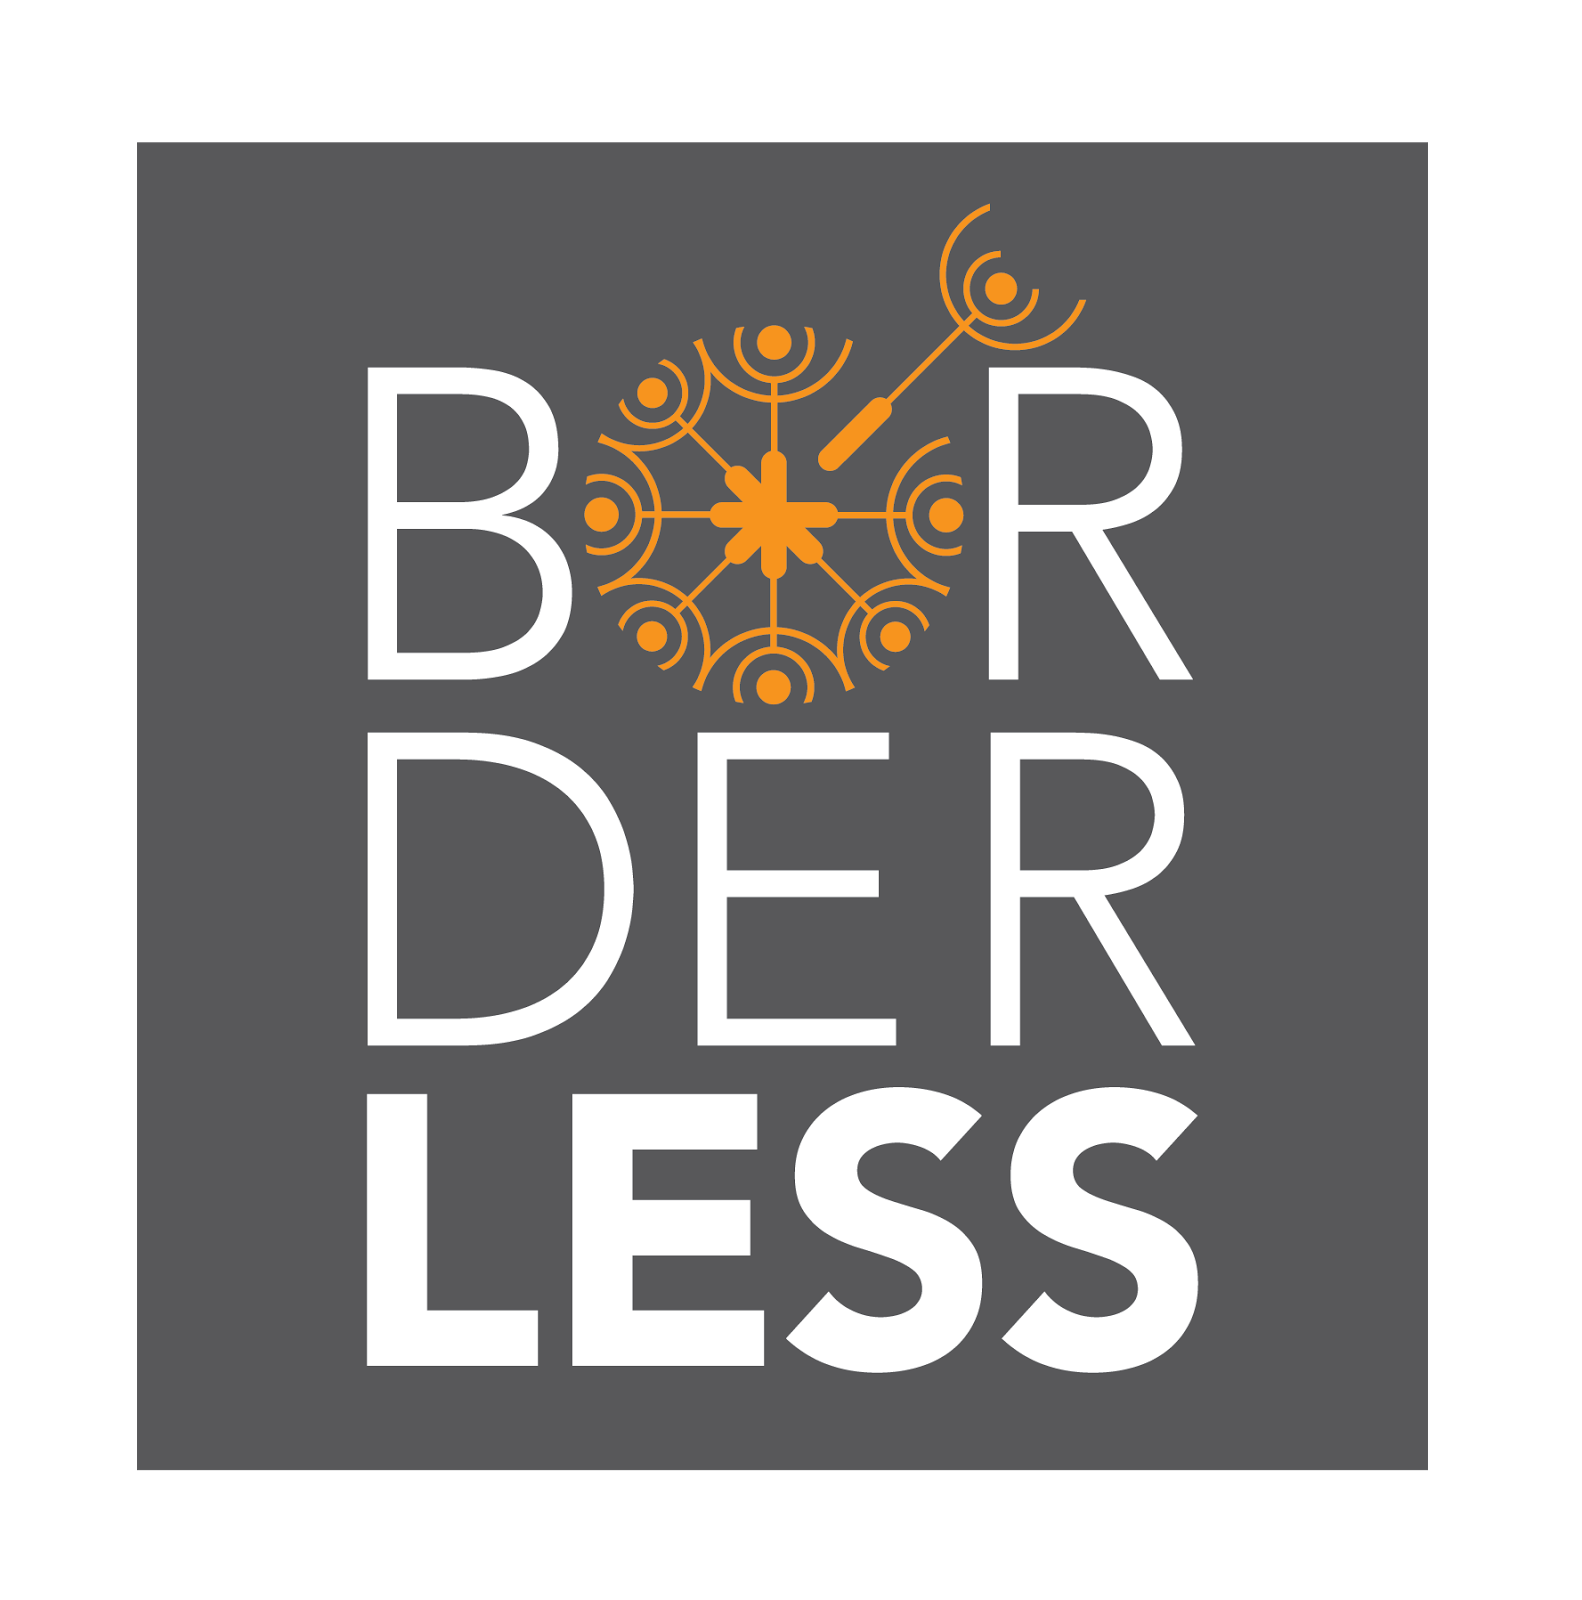 #weareborderless